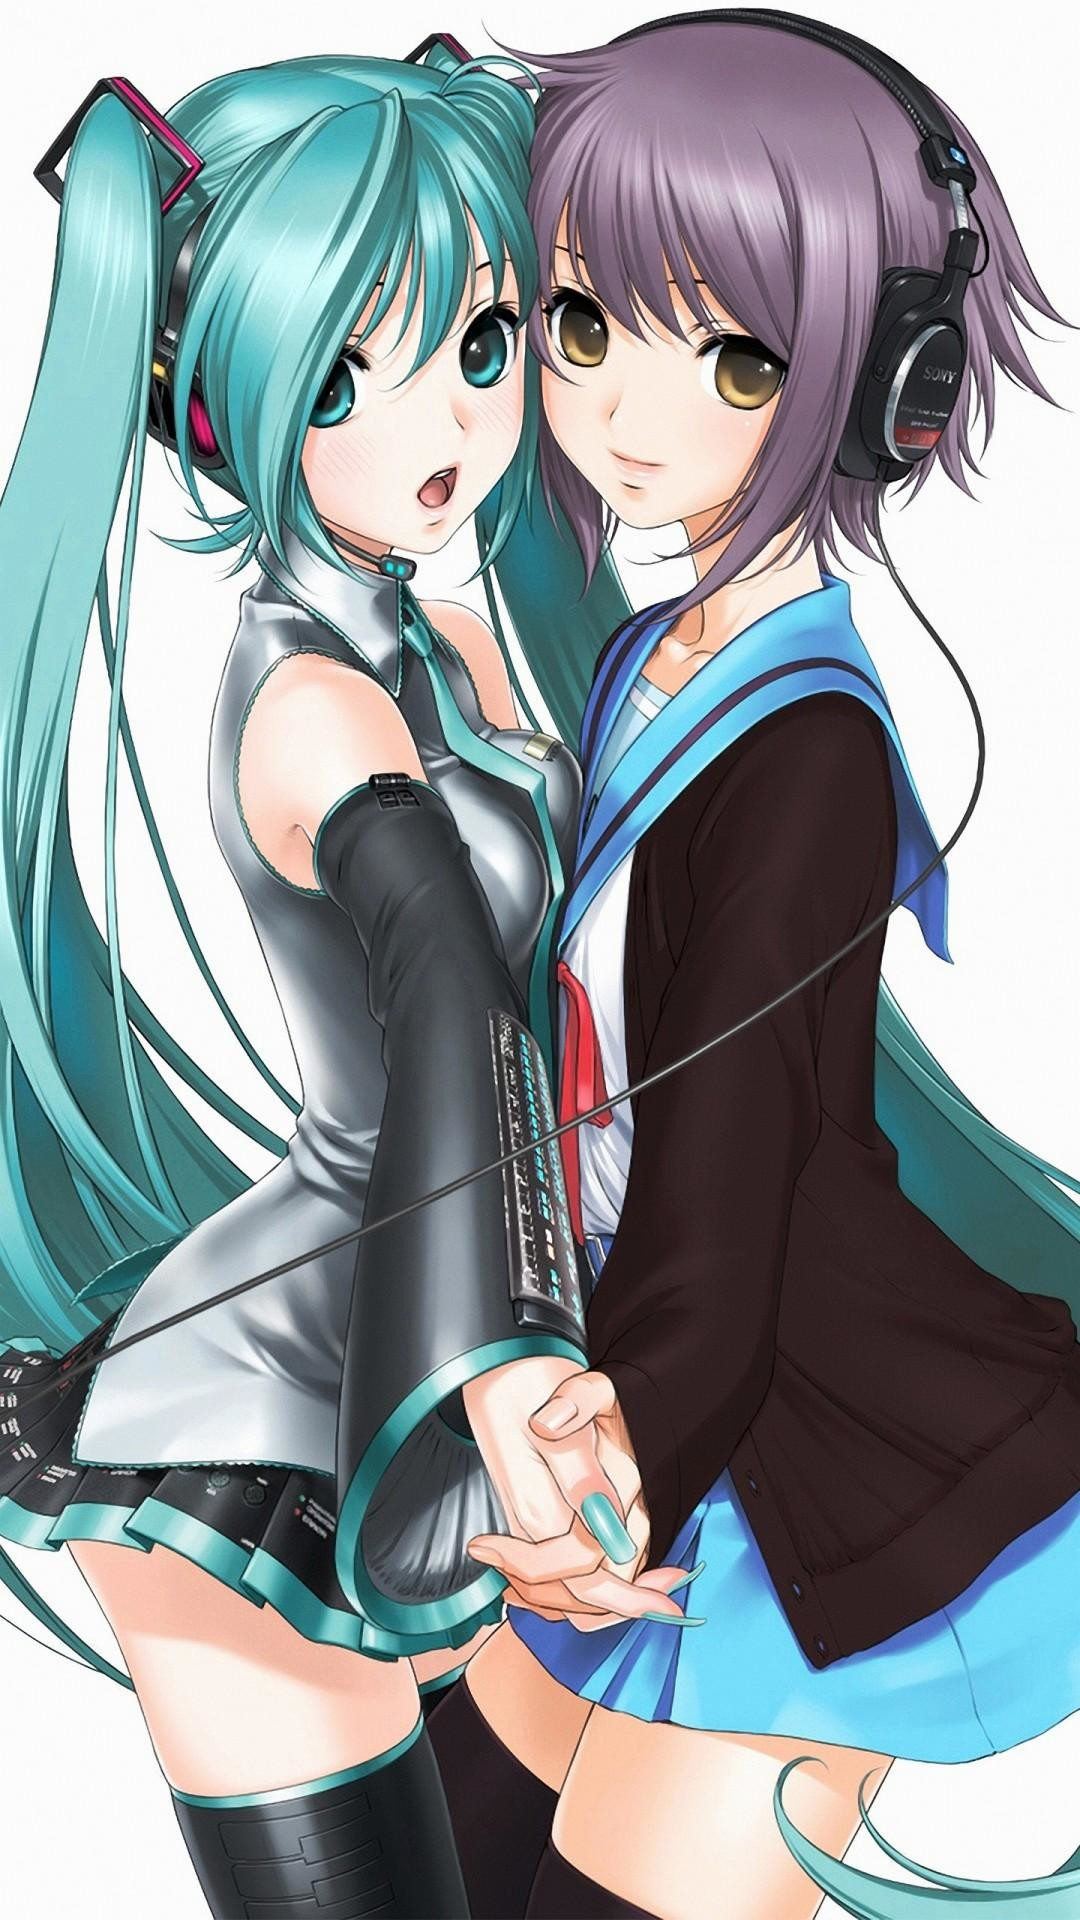 Photos-Download-HD-Anime-iPhone-Wallpaper